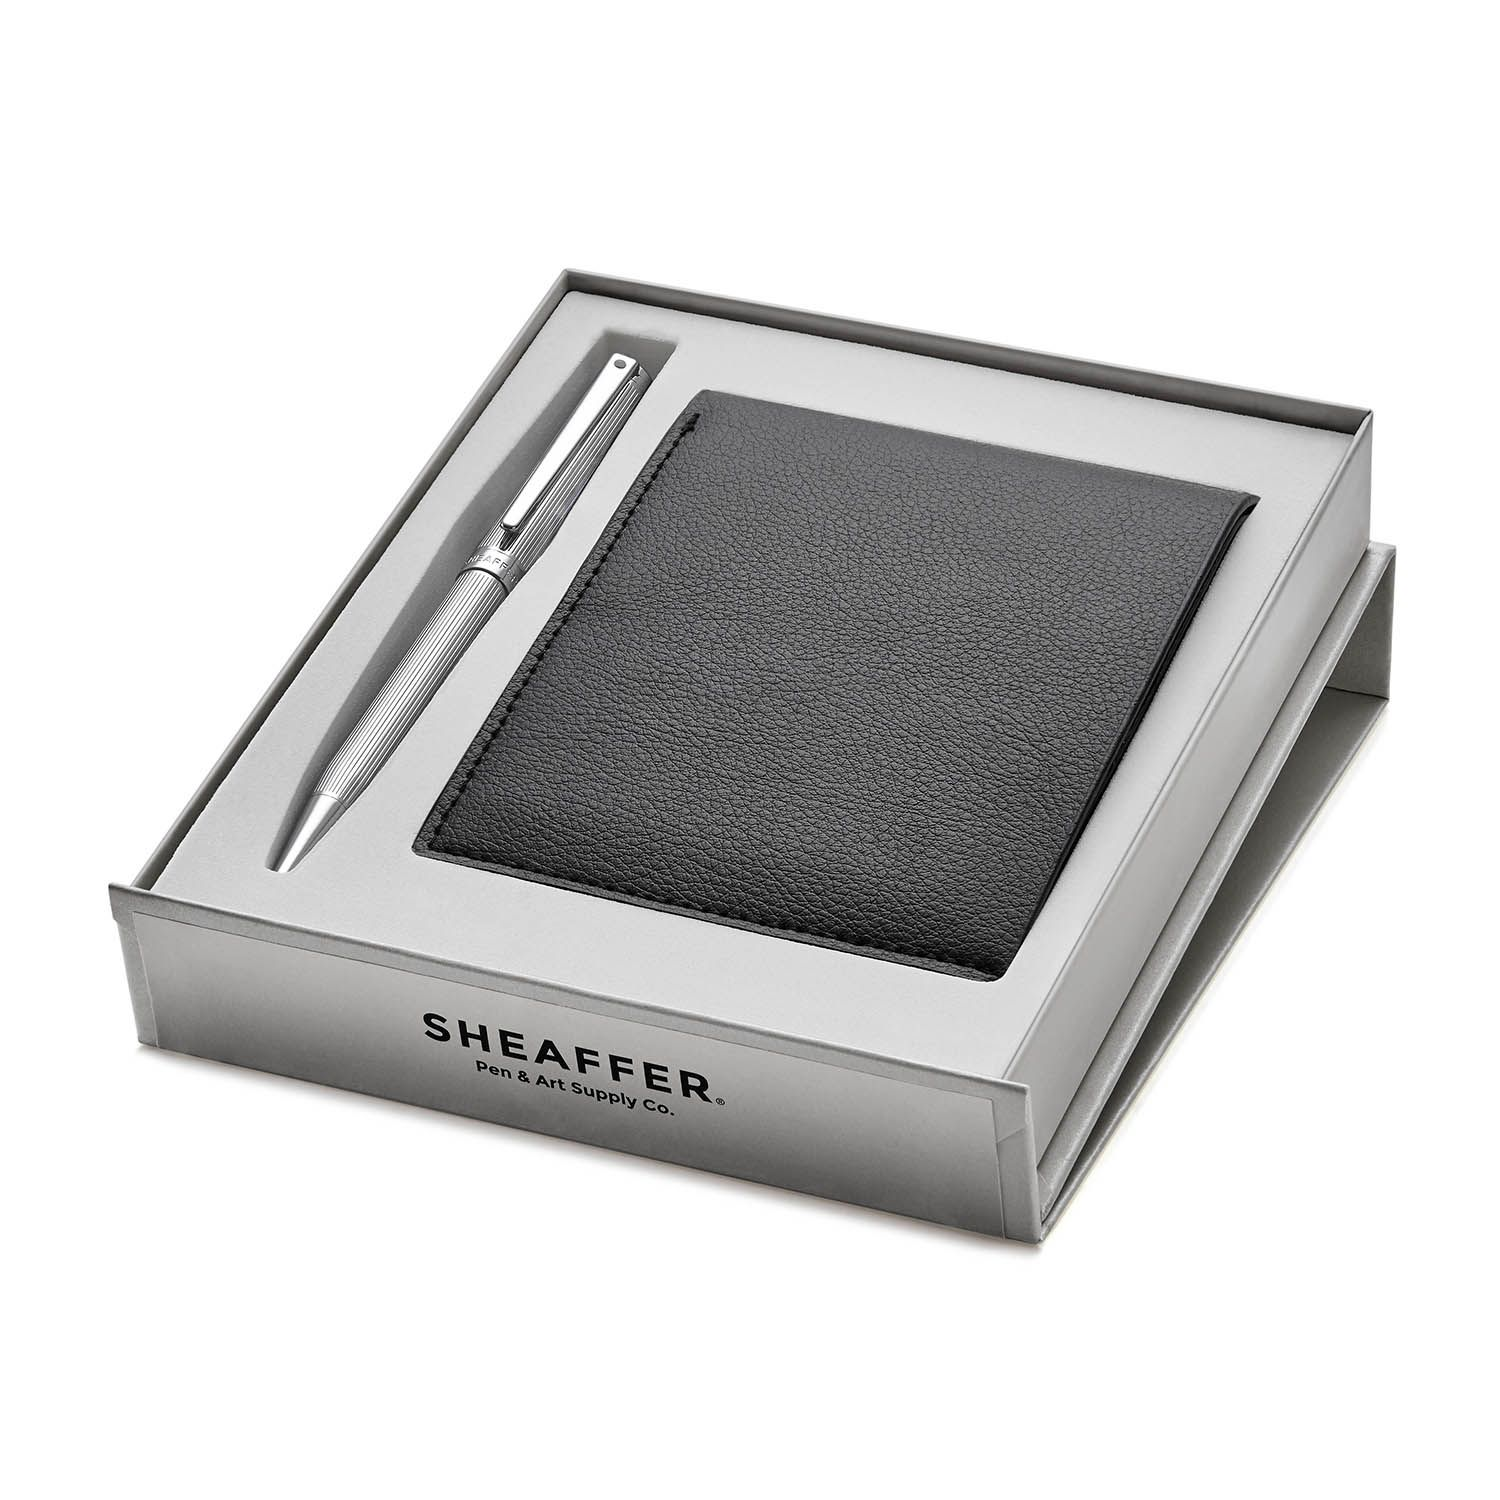 Sheaffer 9238 Ball Point Pen With Slim Wallet Rs. 1950